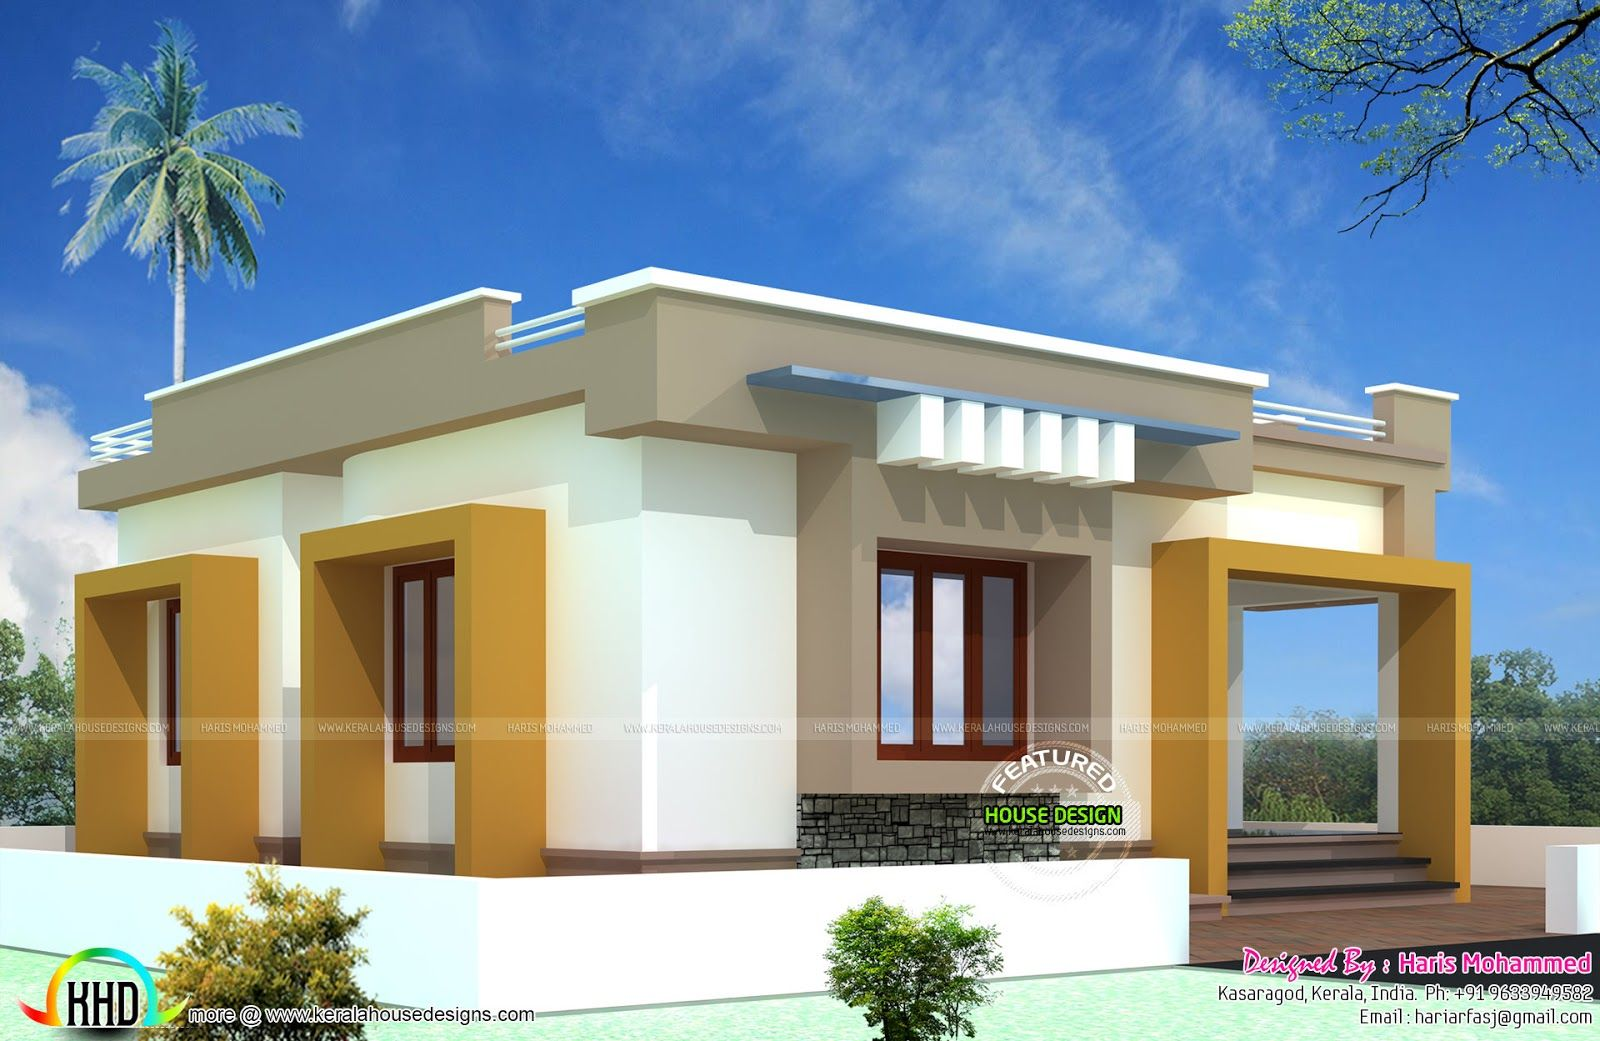 5 Lakh Home Design Part - 35: Lakhs Budget Smallbudget Single Floor House In An Area Of 812 Square Feet  By Haris Mohammed, Kasaragod, Kerala.